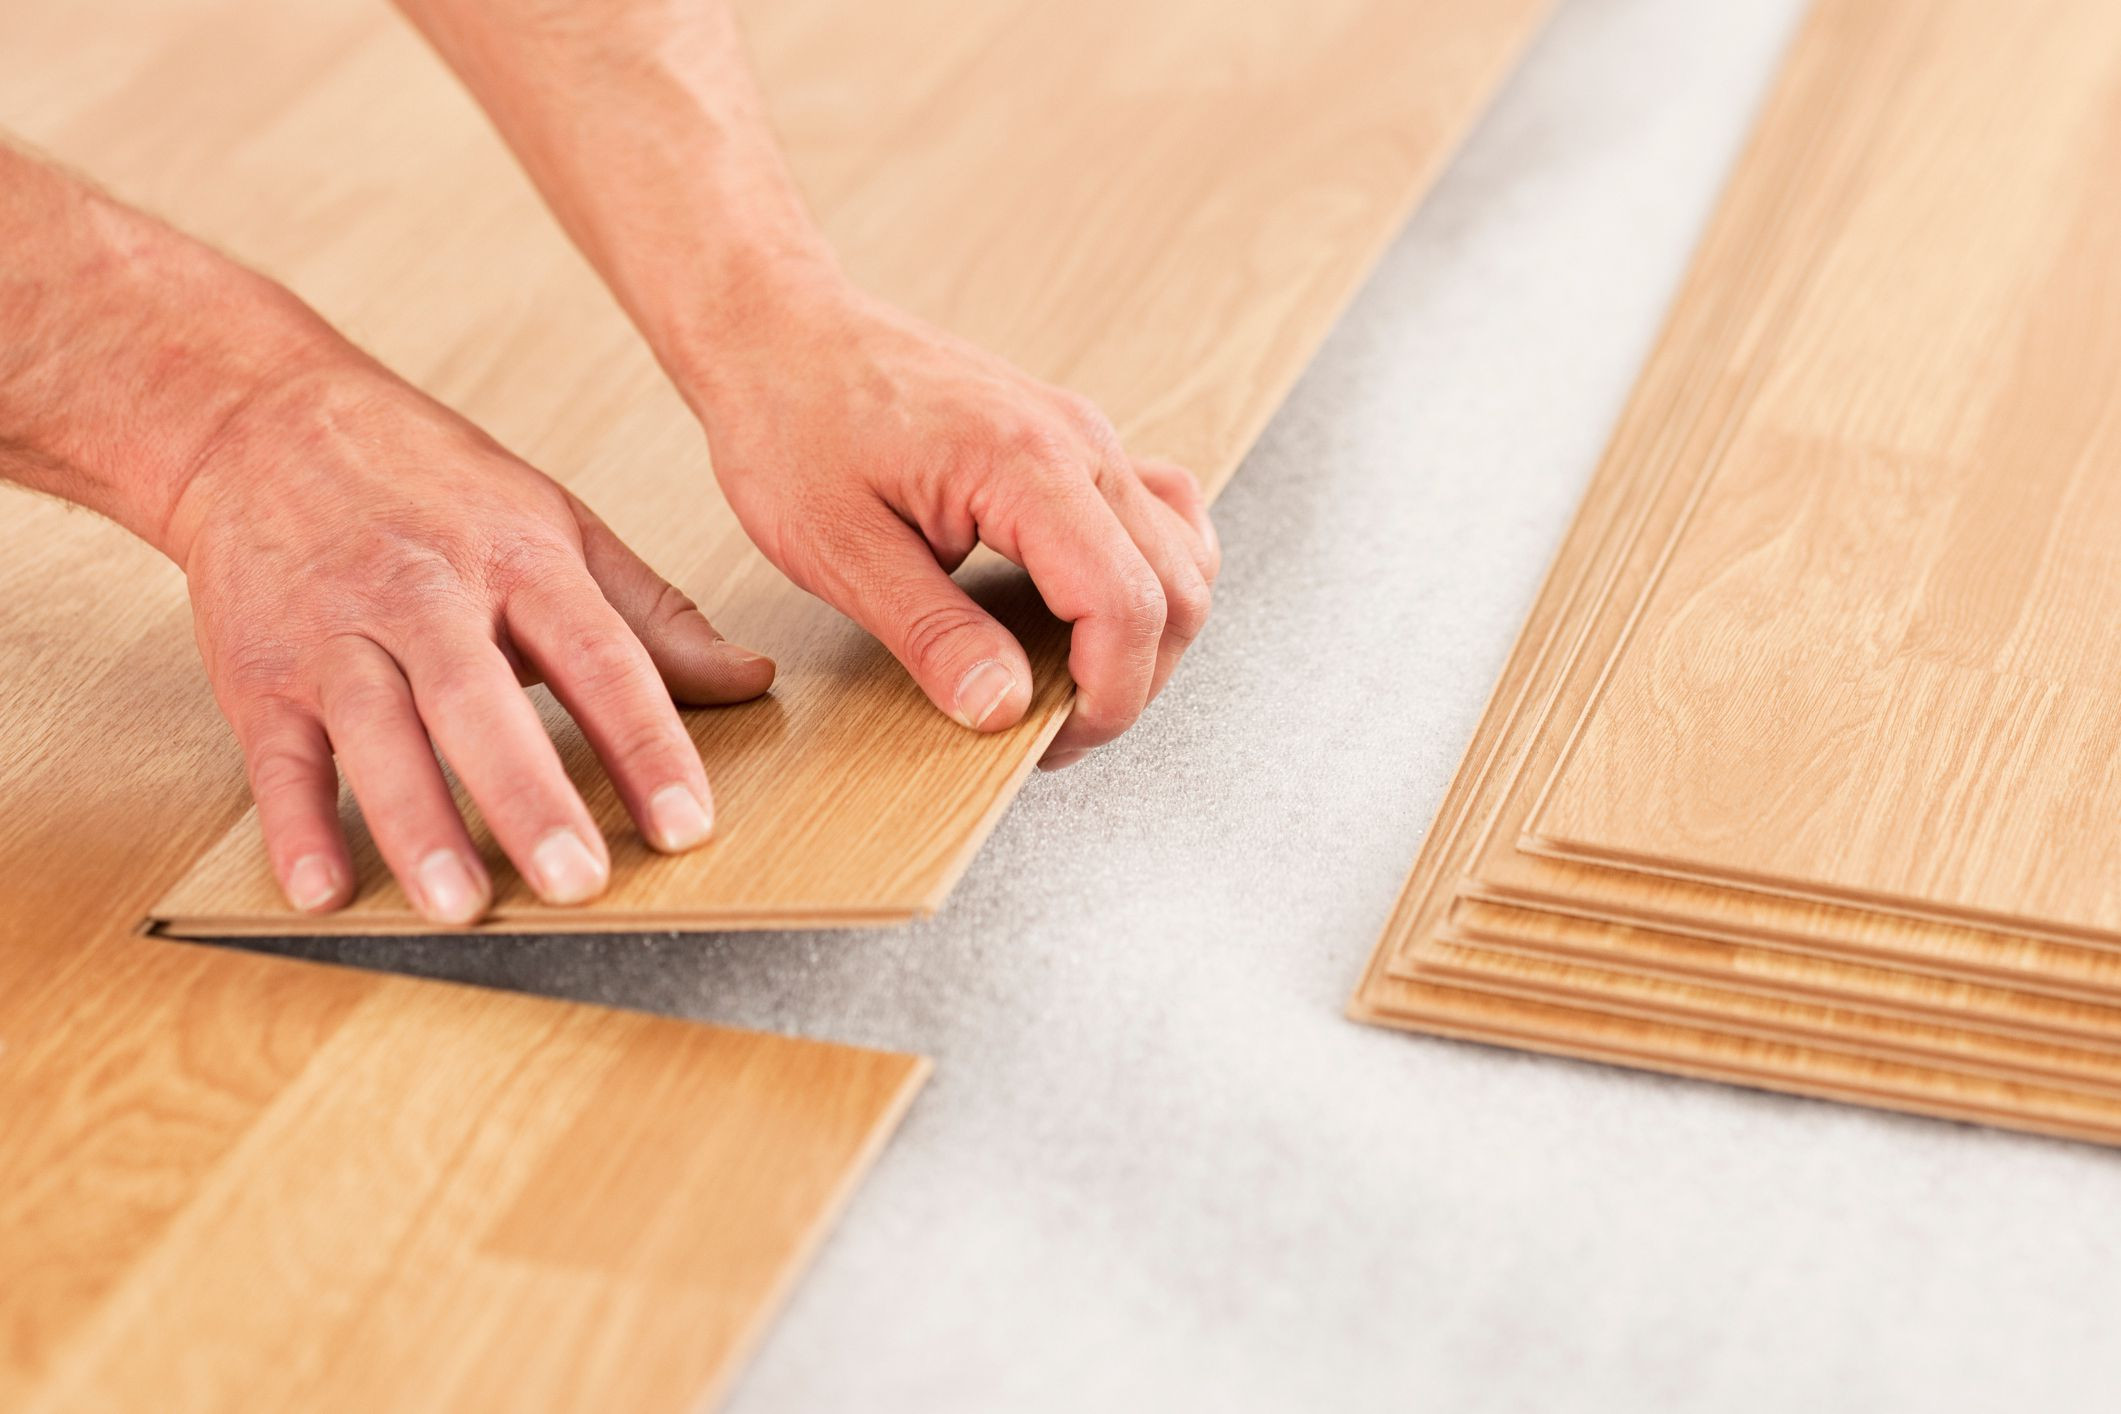 7 plank hardwood flooring of laminate underlayment pros and cons with regard to laminate floor install gettyimages 154961561 588816495f9b58bdb3da1a02